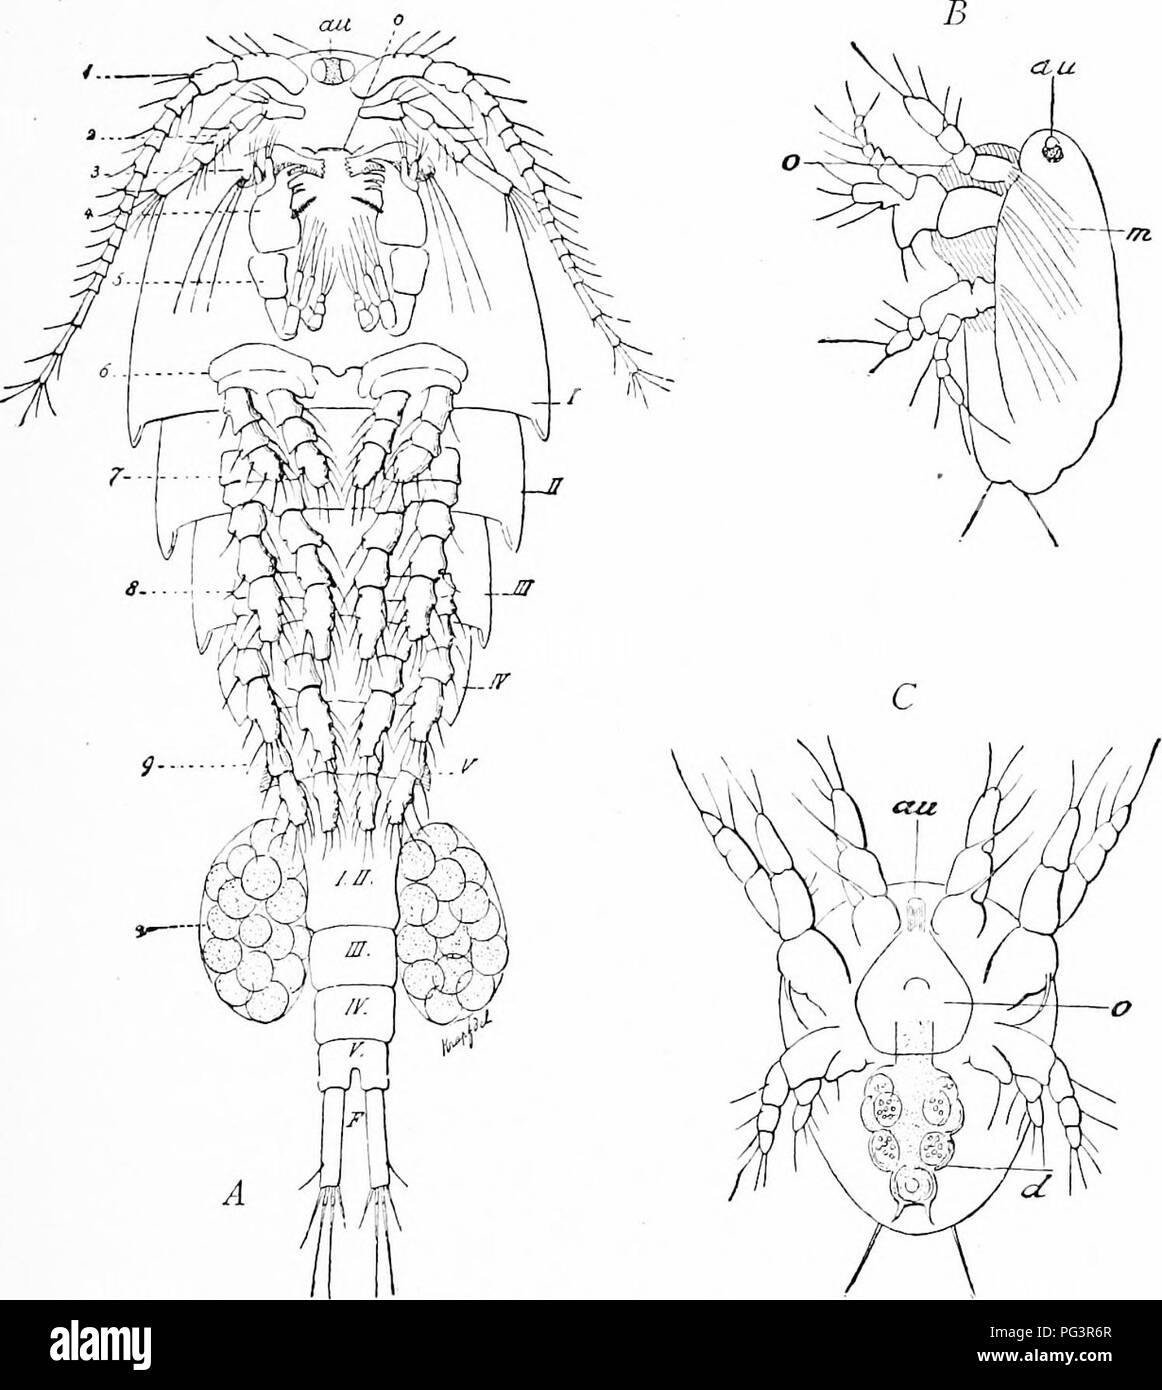 """. A manual of zoology. Zoology. HISTORY OF ZOOLOGY 29 and then the cyclops-stage, because their ancestors were once fish-Iikc, perennibranchiate-like, nauplius- and cyclops-hke. Here is expressed a general phenomenon which Haeckel has stated under the name of 'the Fundamental Law of Biogenesis.' """"The development history (ontogeny). Fig. 7.—Cyclops coronatus {A) and also its nauplius in lateral (B) and in ventral view (C). /, head; II-V, the five thoracic, and behind the.se the five abdominal segments; F, furca; i, the first, 2, the second, antenna;; 3, mandibles; 4, ma.xillx>; 5, maxil Stock Photo"""